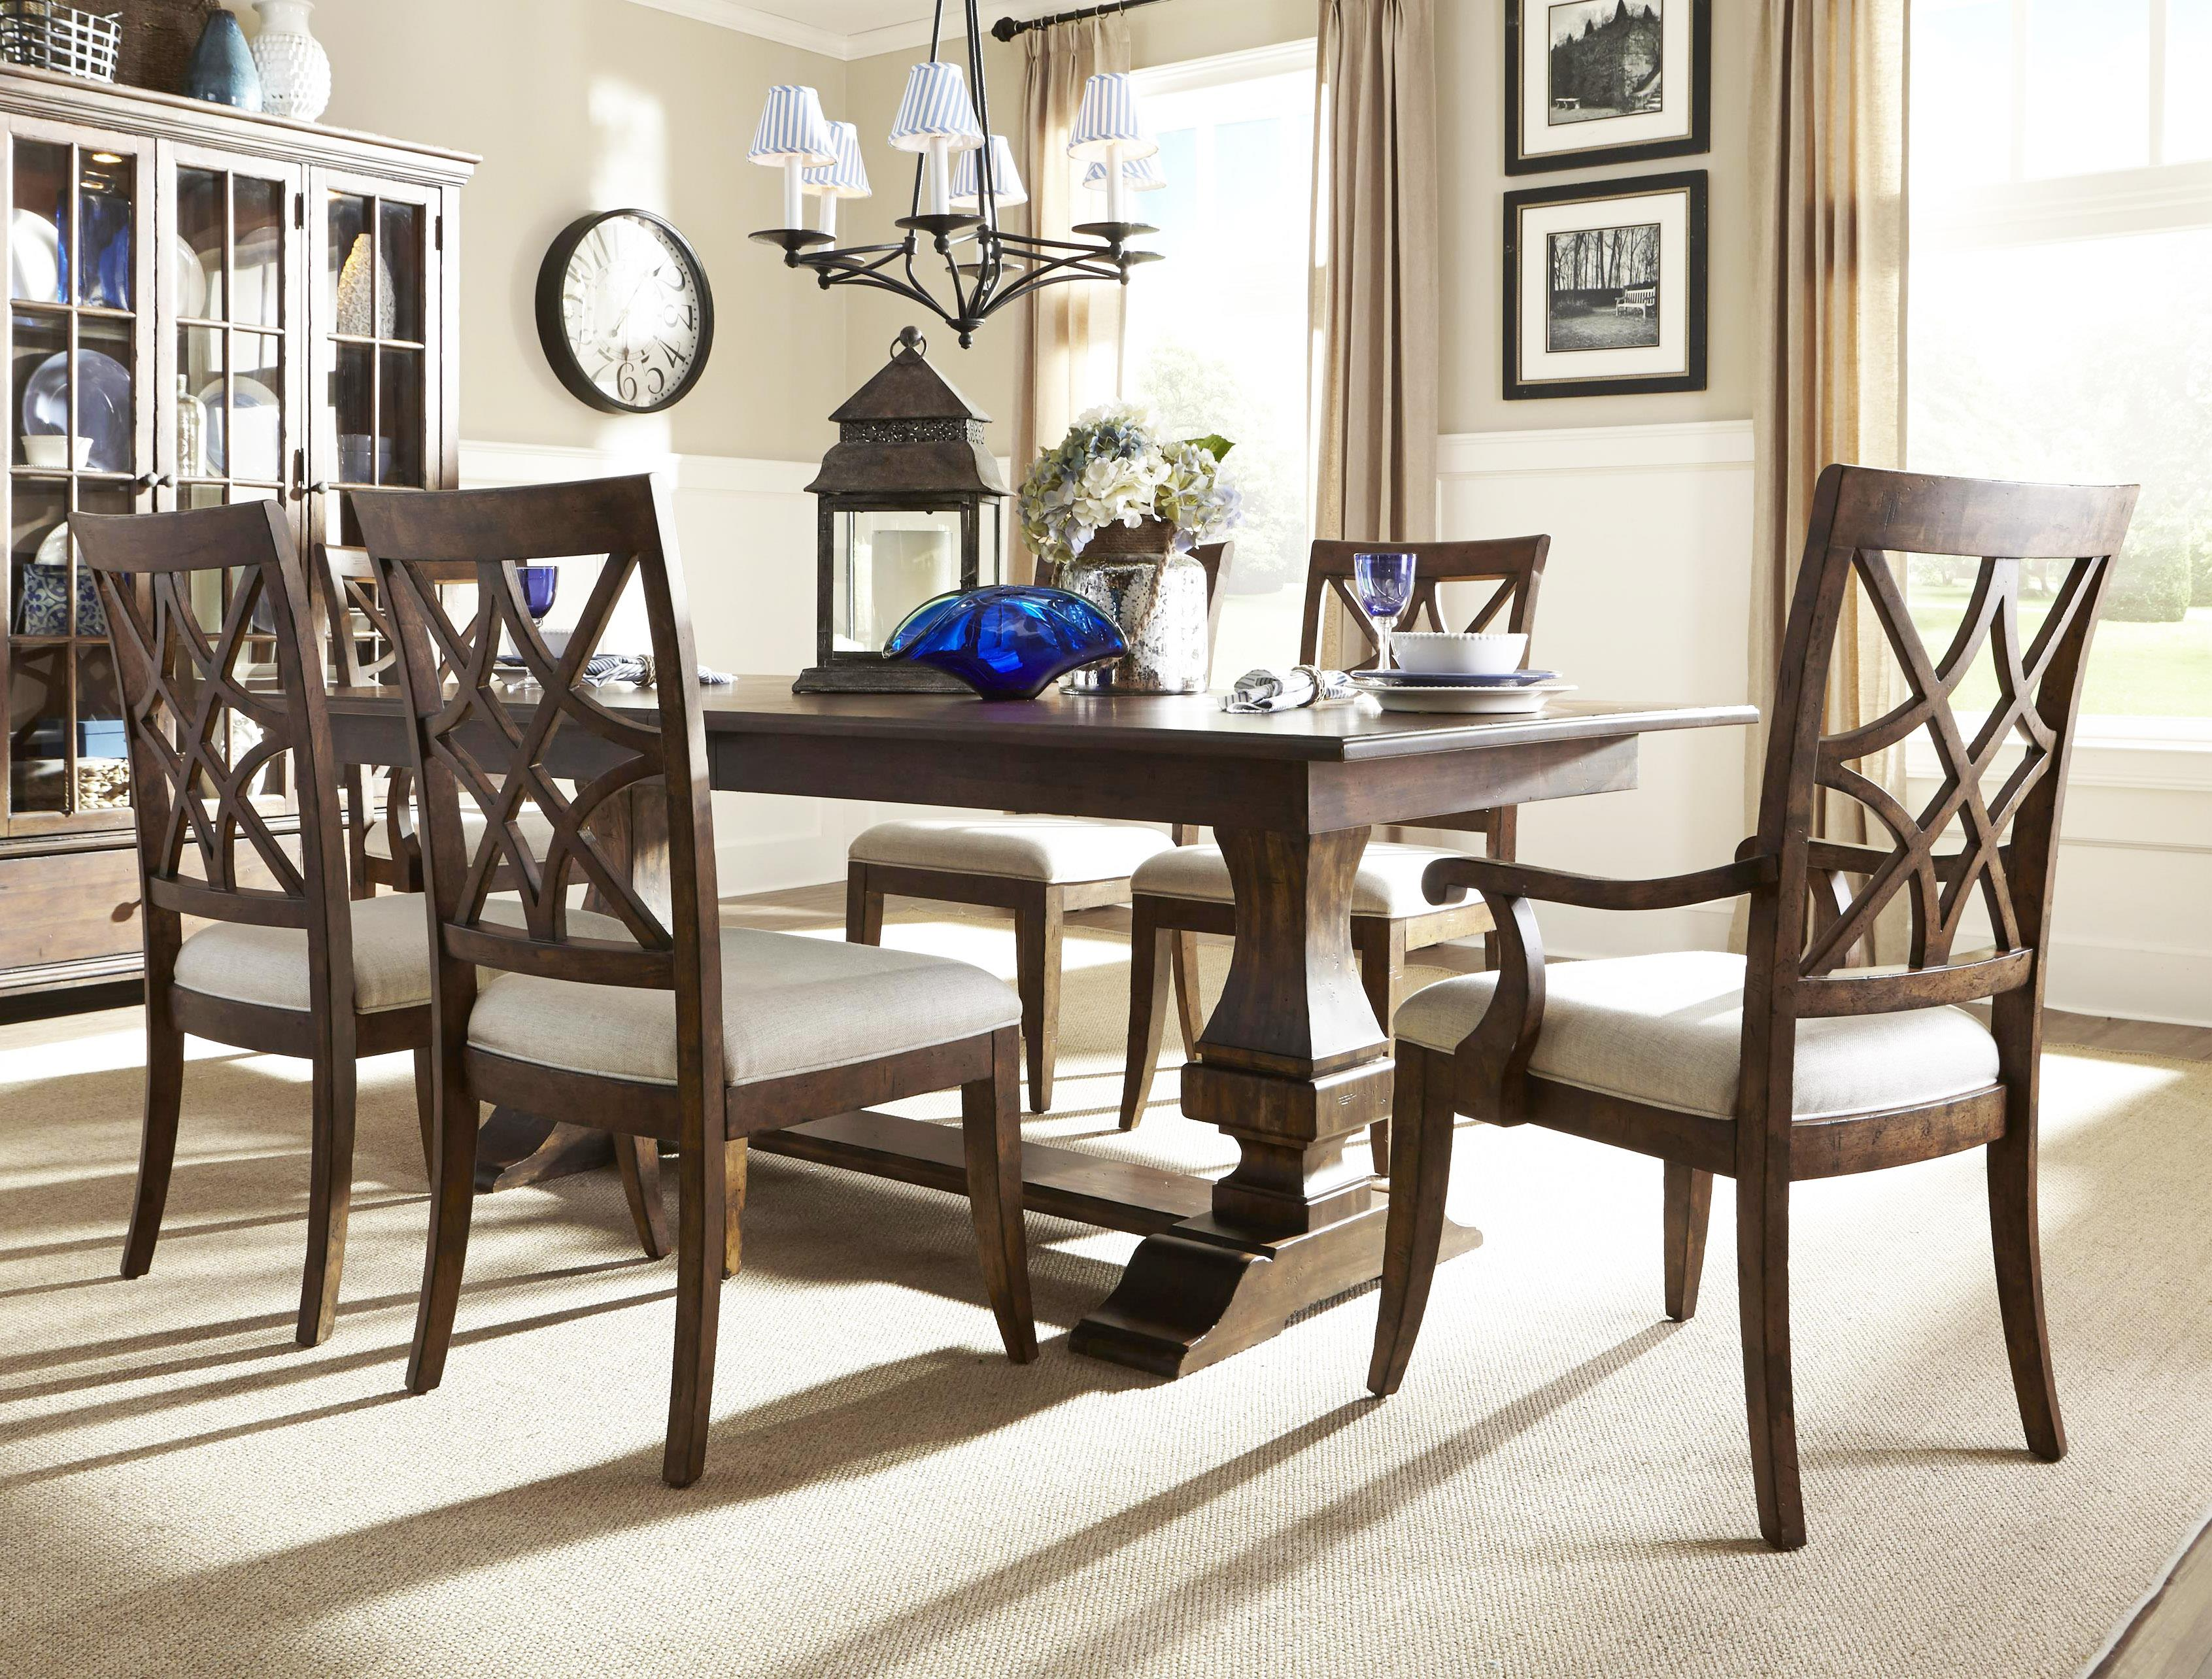 Trisha yearwood home collection by klaussner trisha for Homes collection